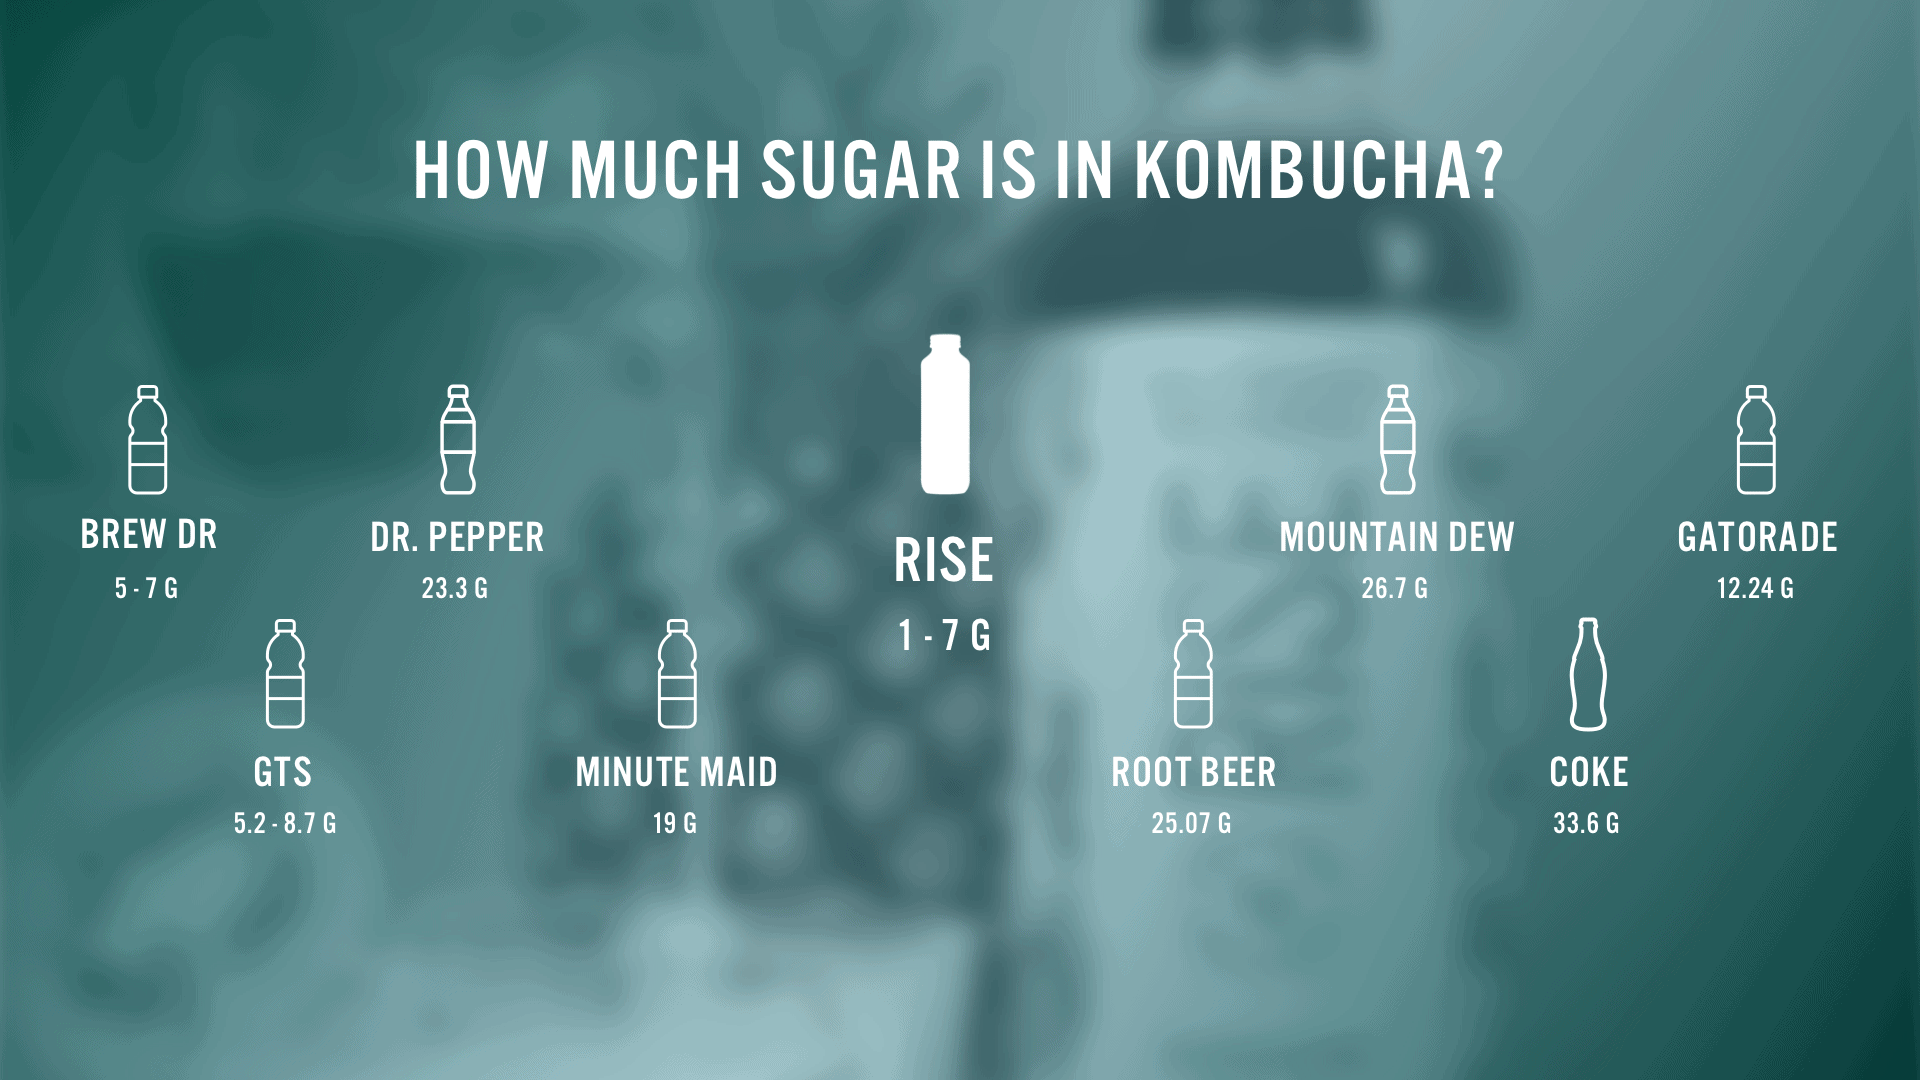 How much sugar is in Kombucha Versus other Drinks